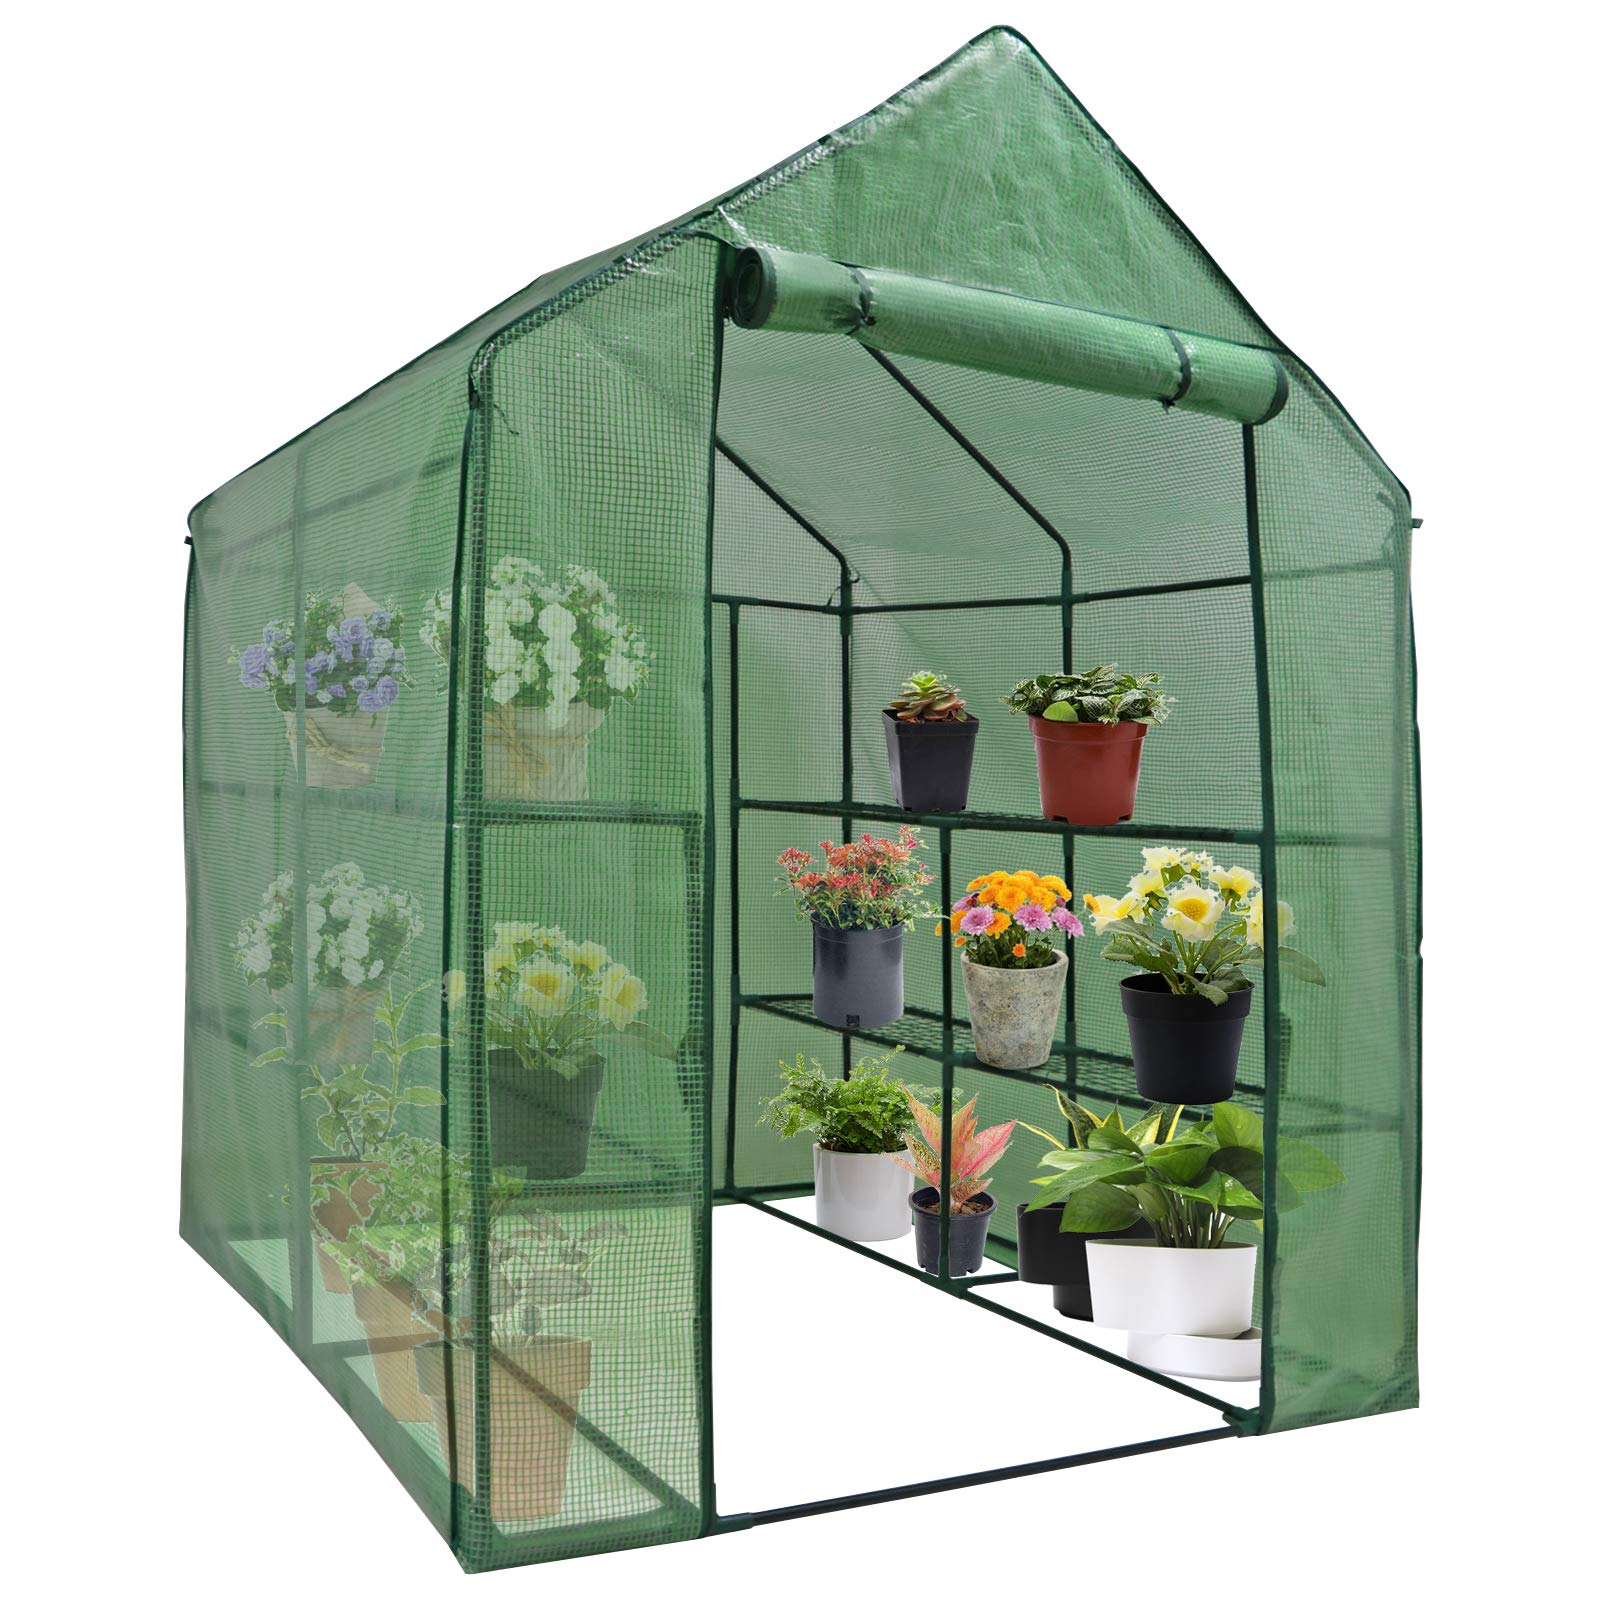 Mini Walk-in Greenhouse Indoor Outdoor -2 Tier 8 Shelves- Portable Plant Gardening Greenhouse (57''L x 57''W x 77''H), Grow Seeds & Seedlings, Herbs Flowers or Tend Potted Plants